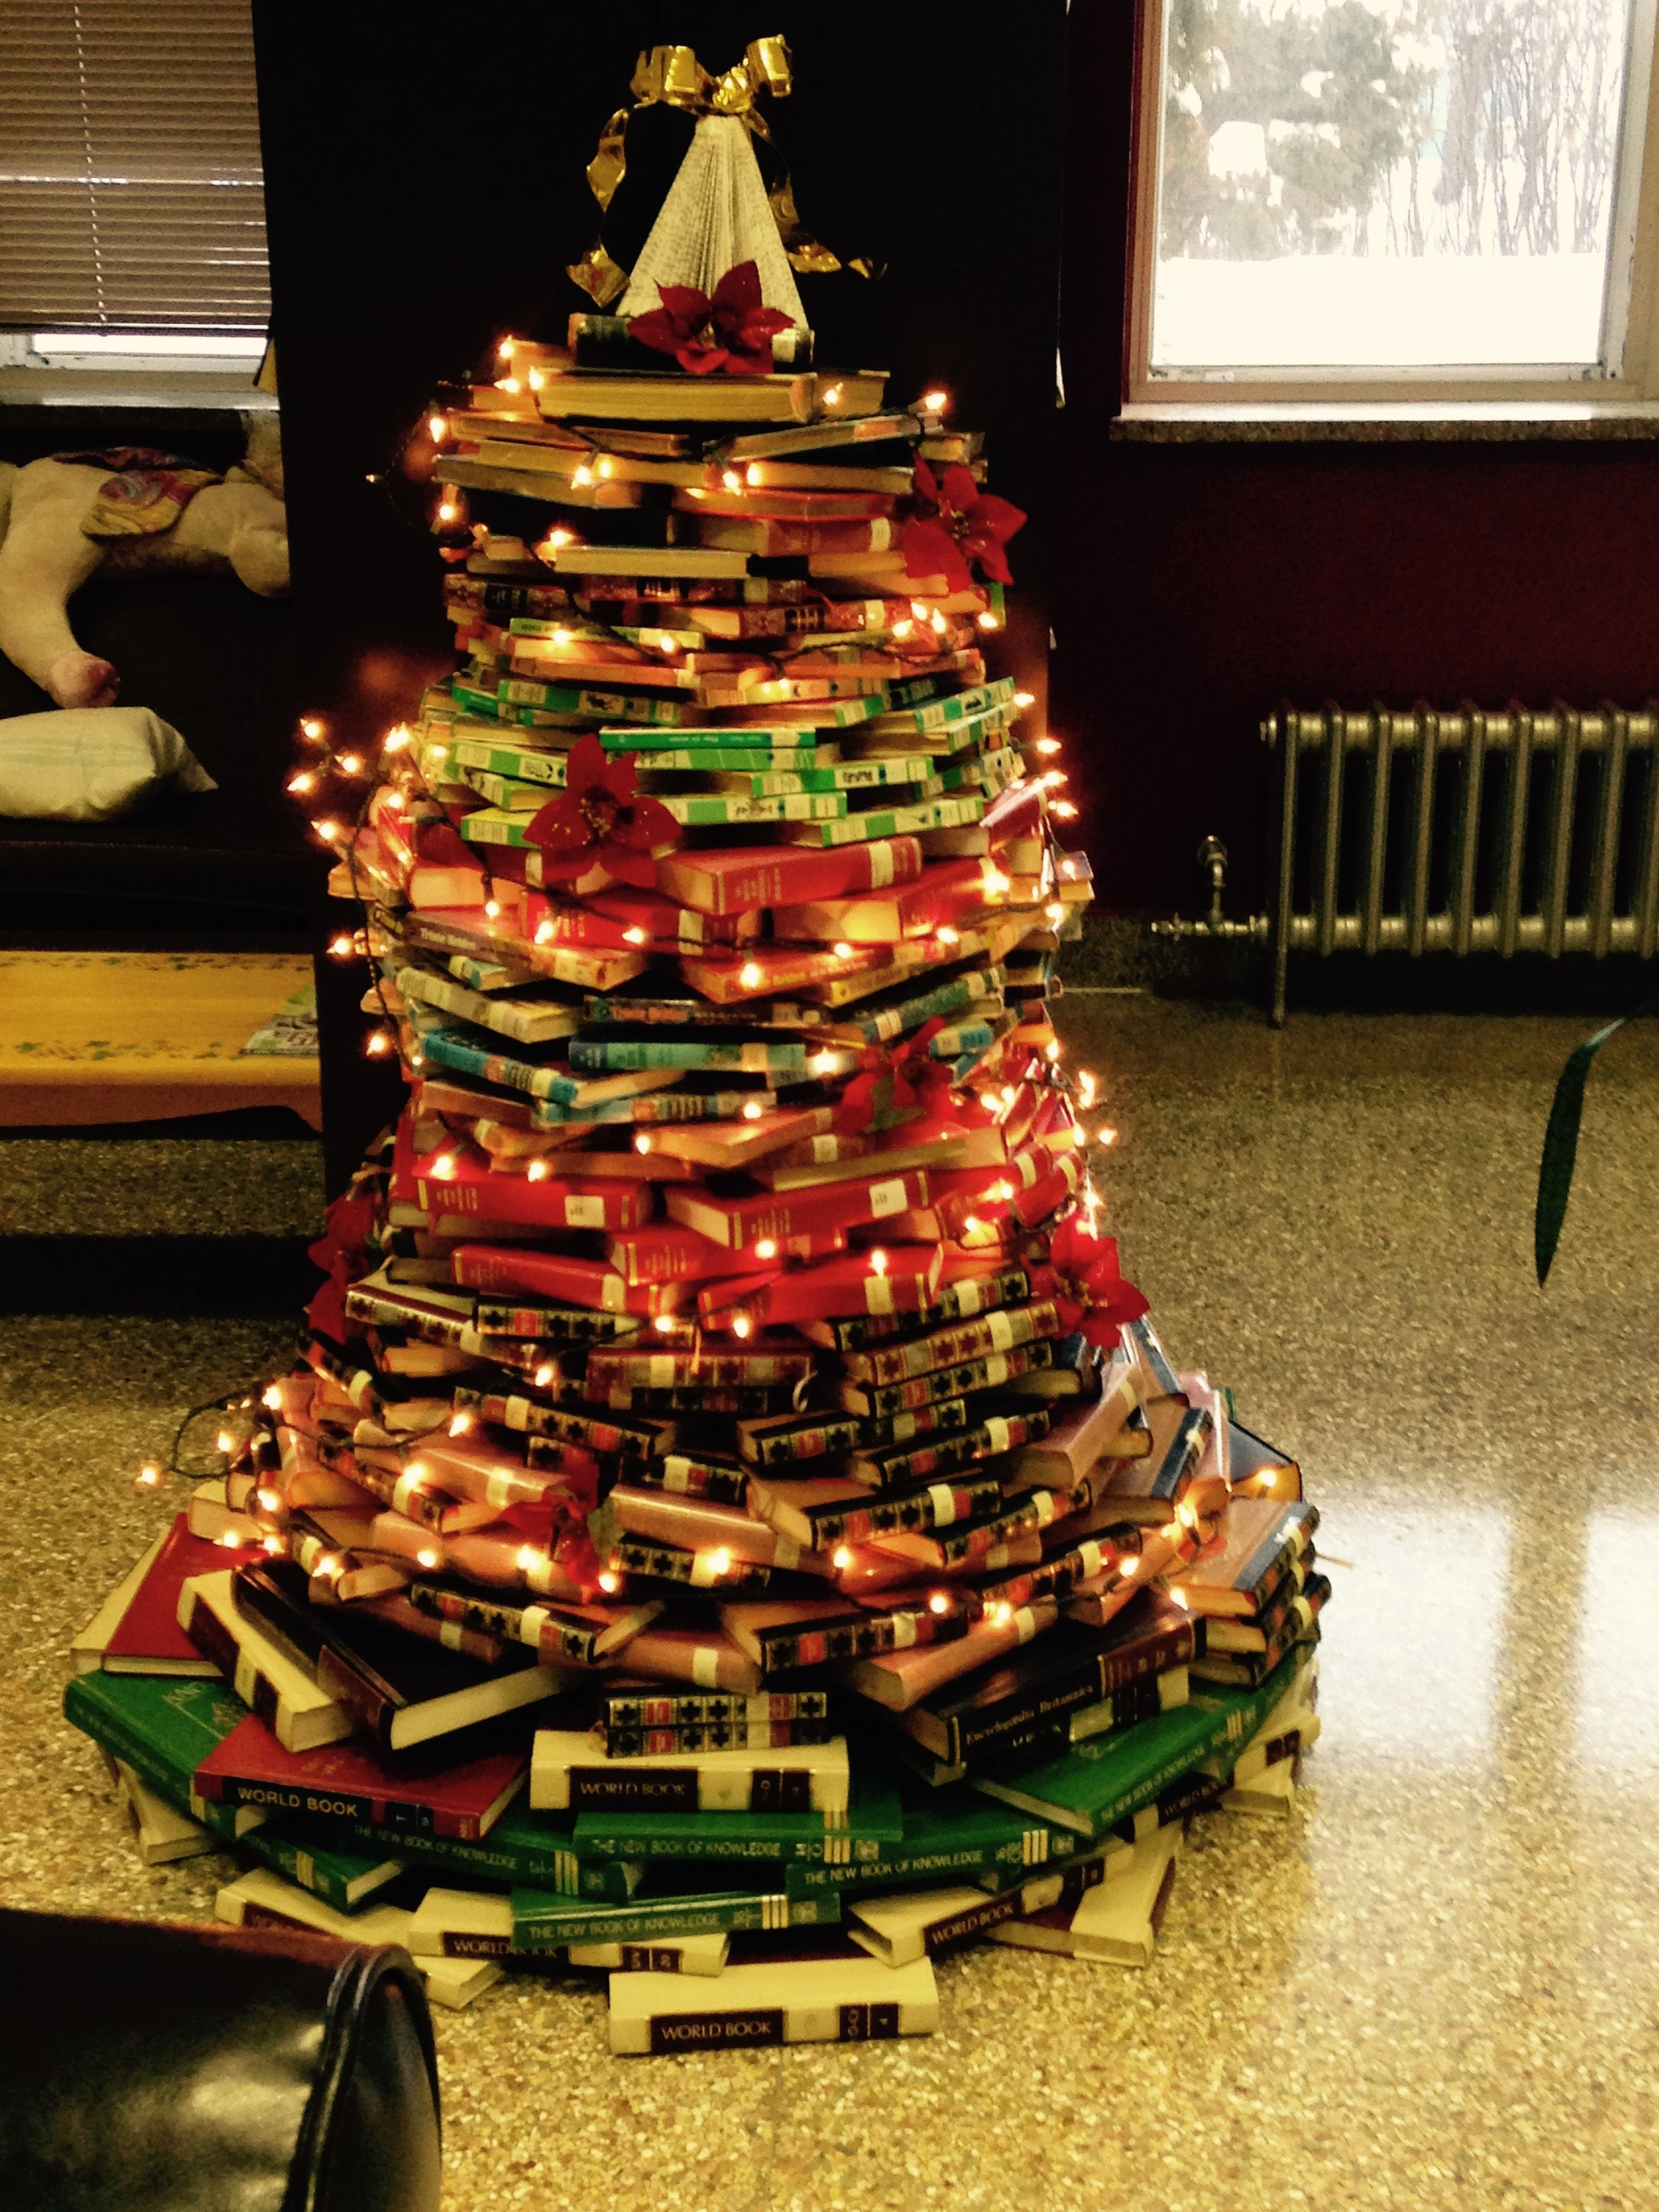 I finally tried constructing a book tree in the library Slightly